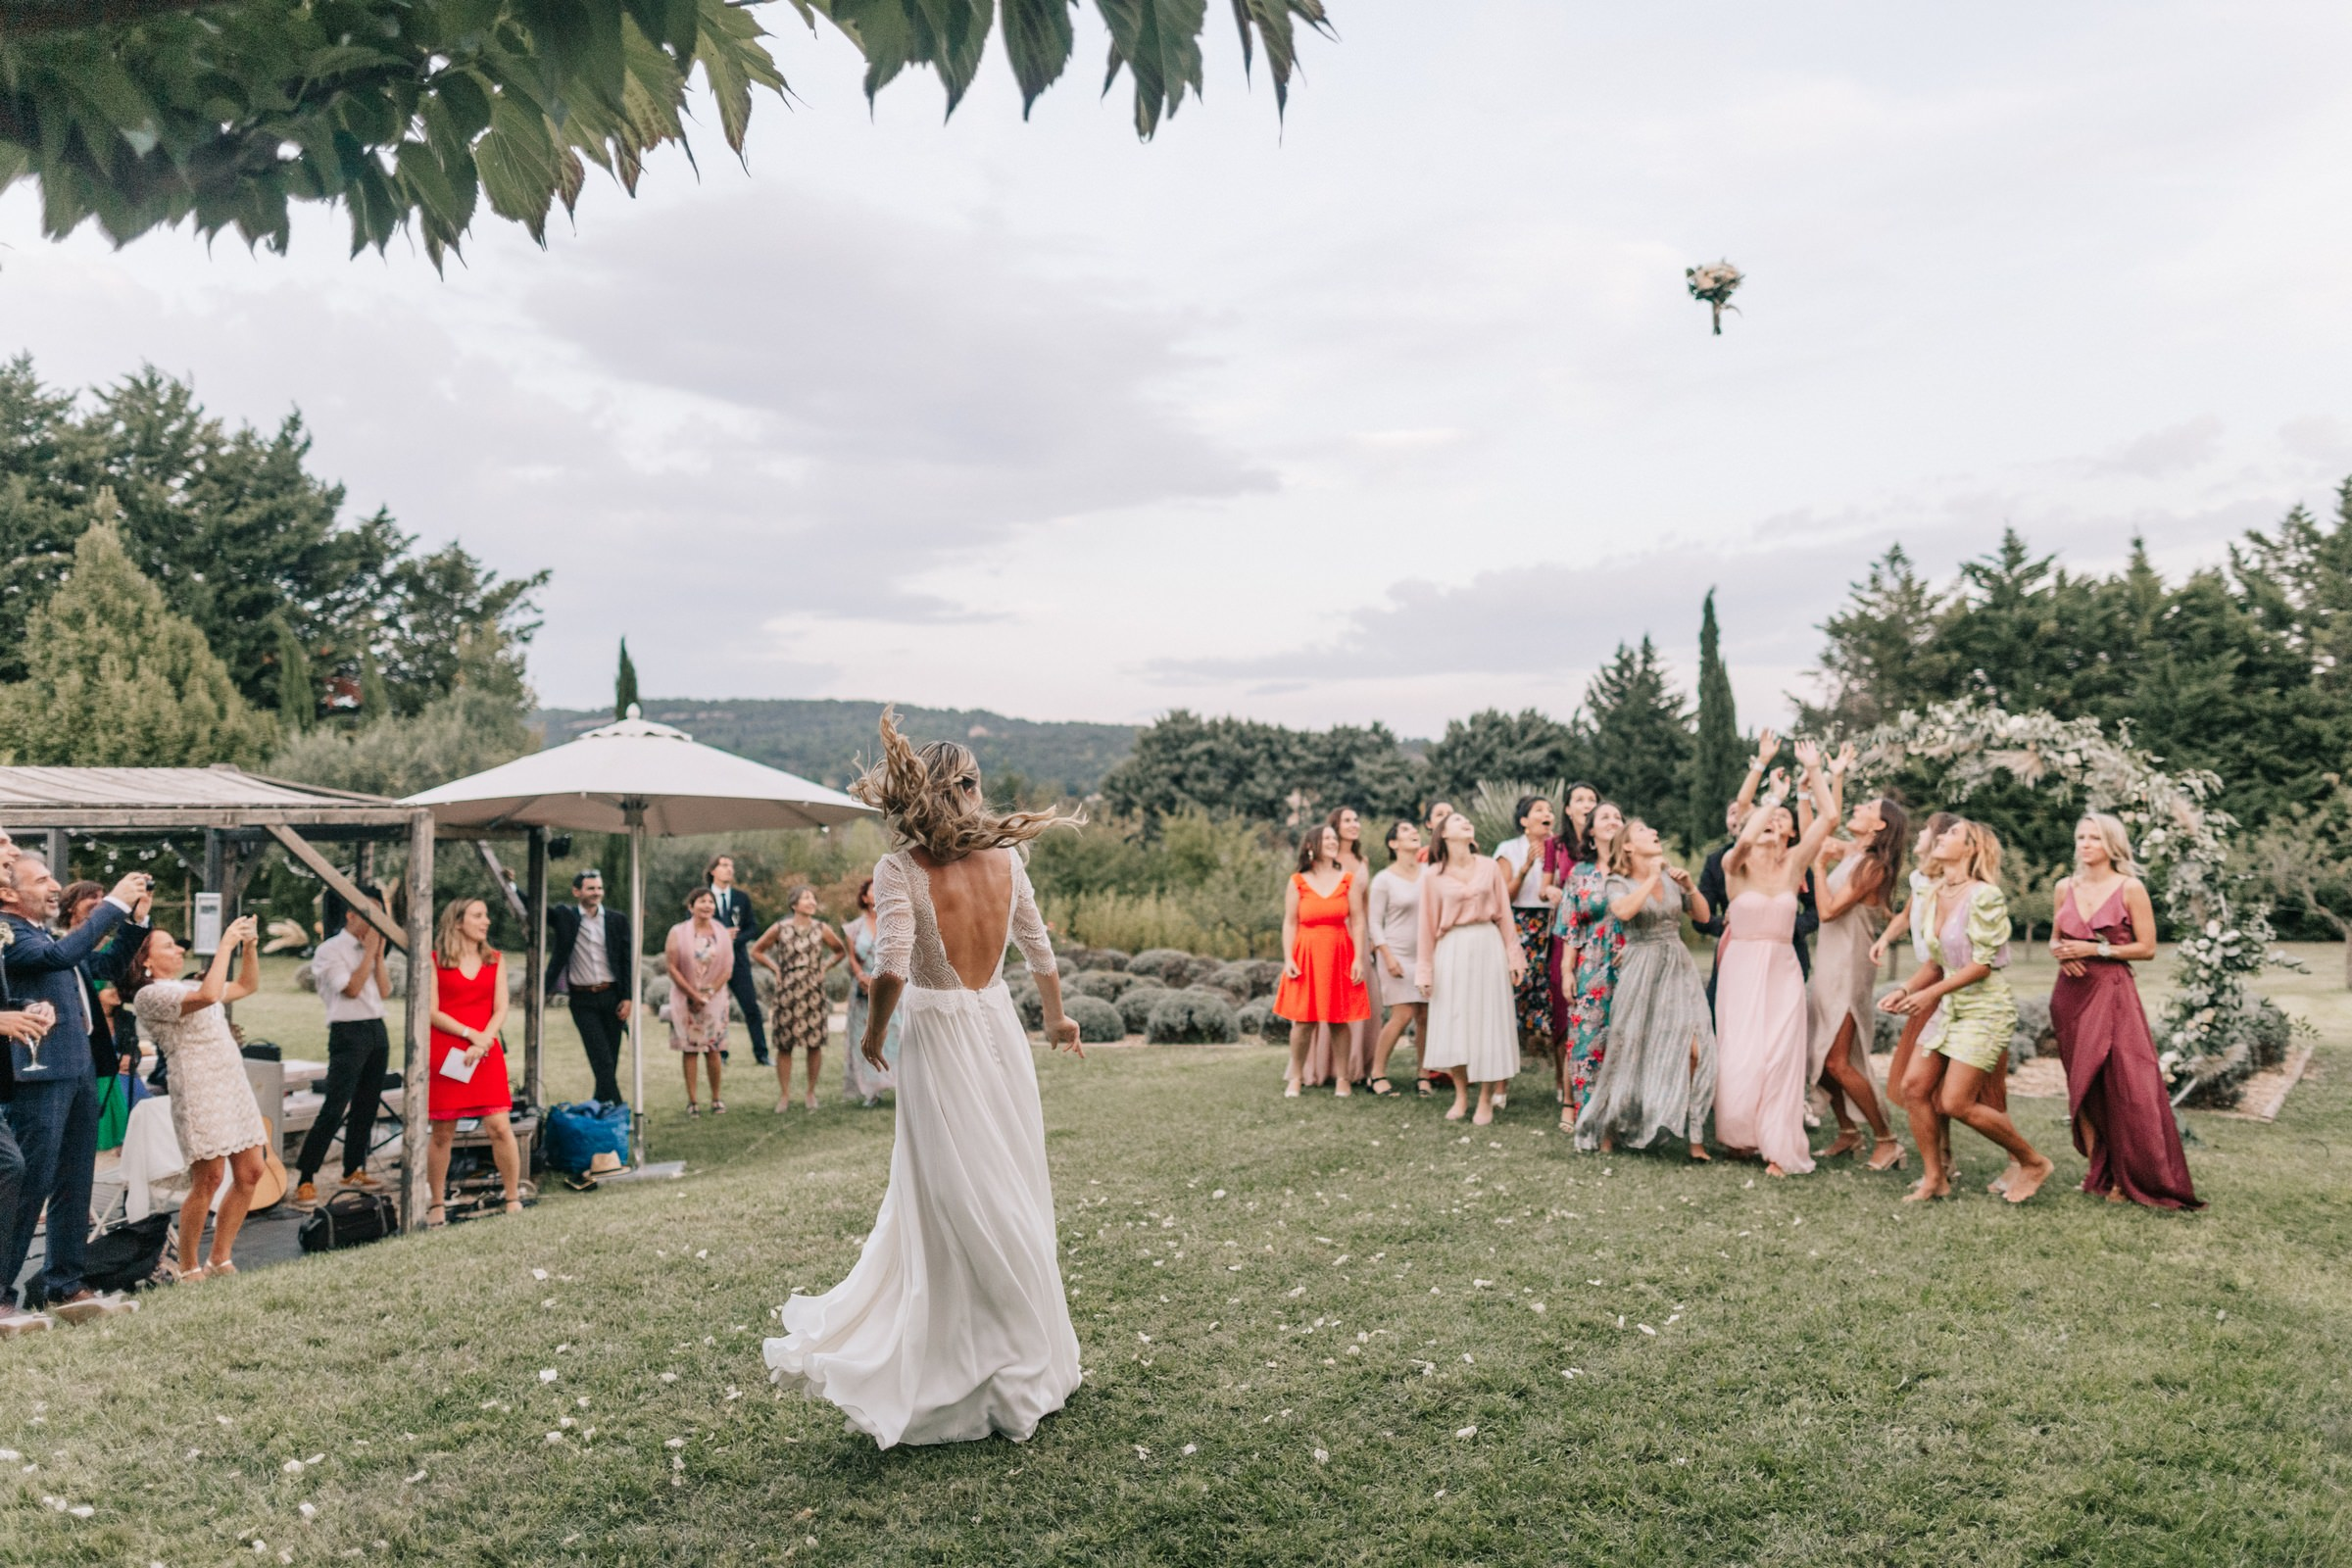 French bride in braids throwing her bouquet - photo by Amandine Ropars - wedding photographer in France